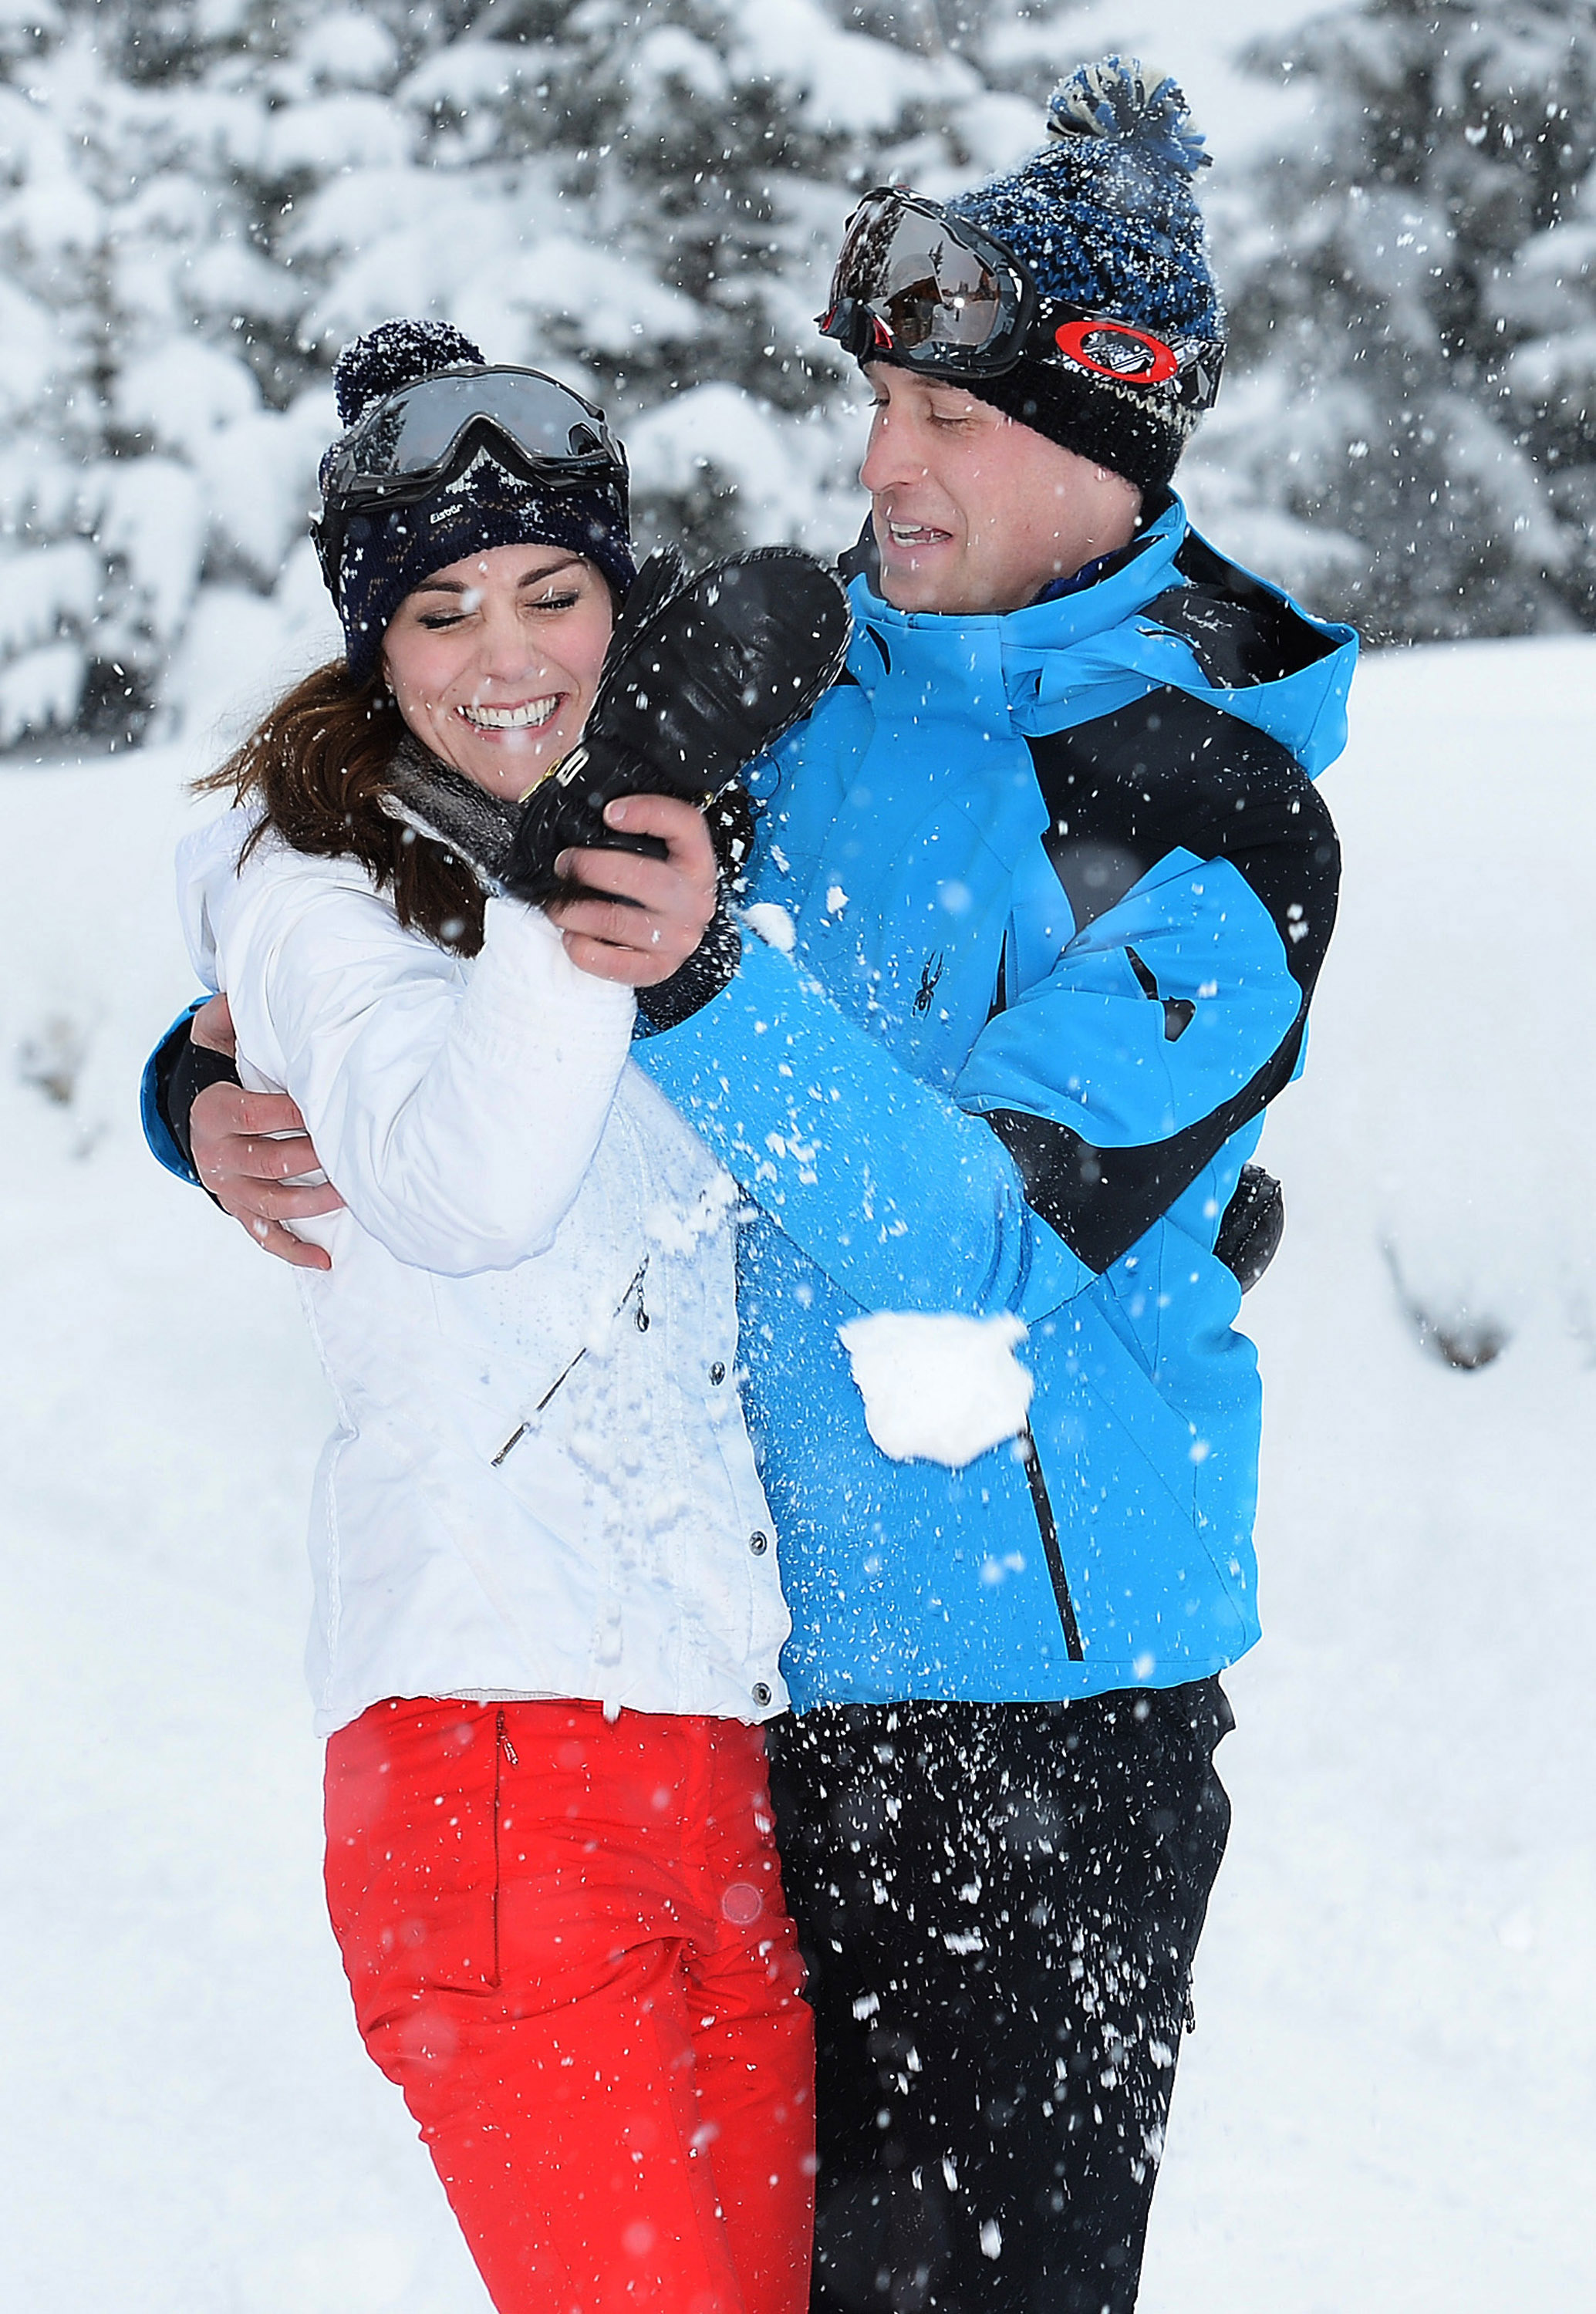 Catherine, Duchess of Cambridge and Prince William, Duke of Cambridge, enjoy a short private skiing break in the French Alps on March 3, 2016.